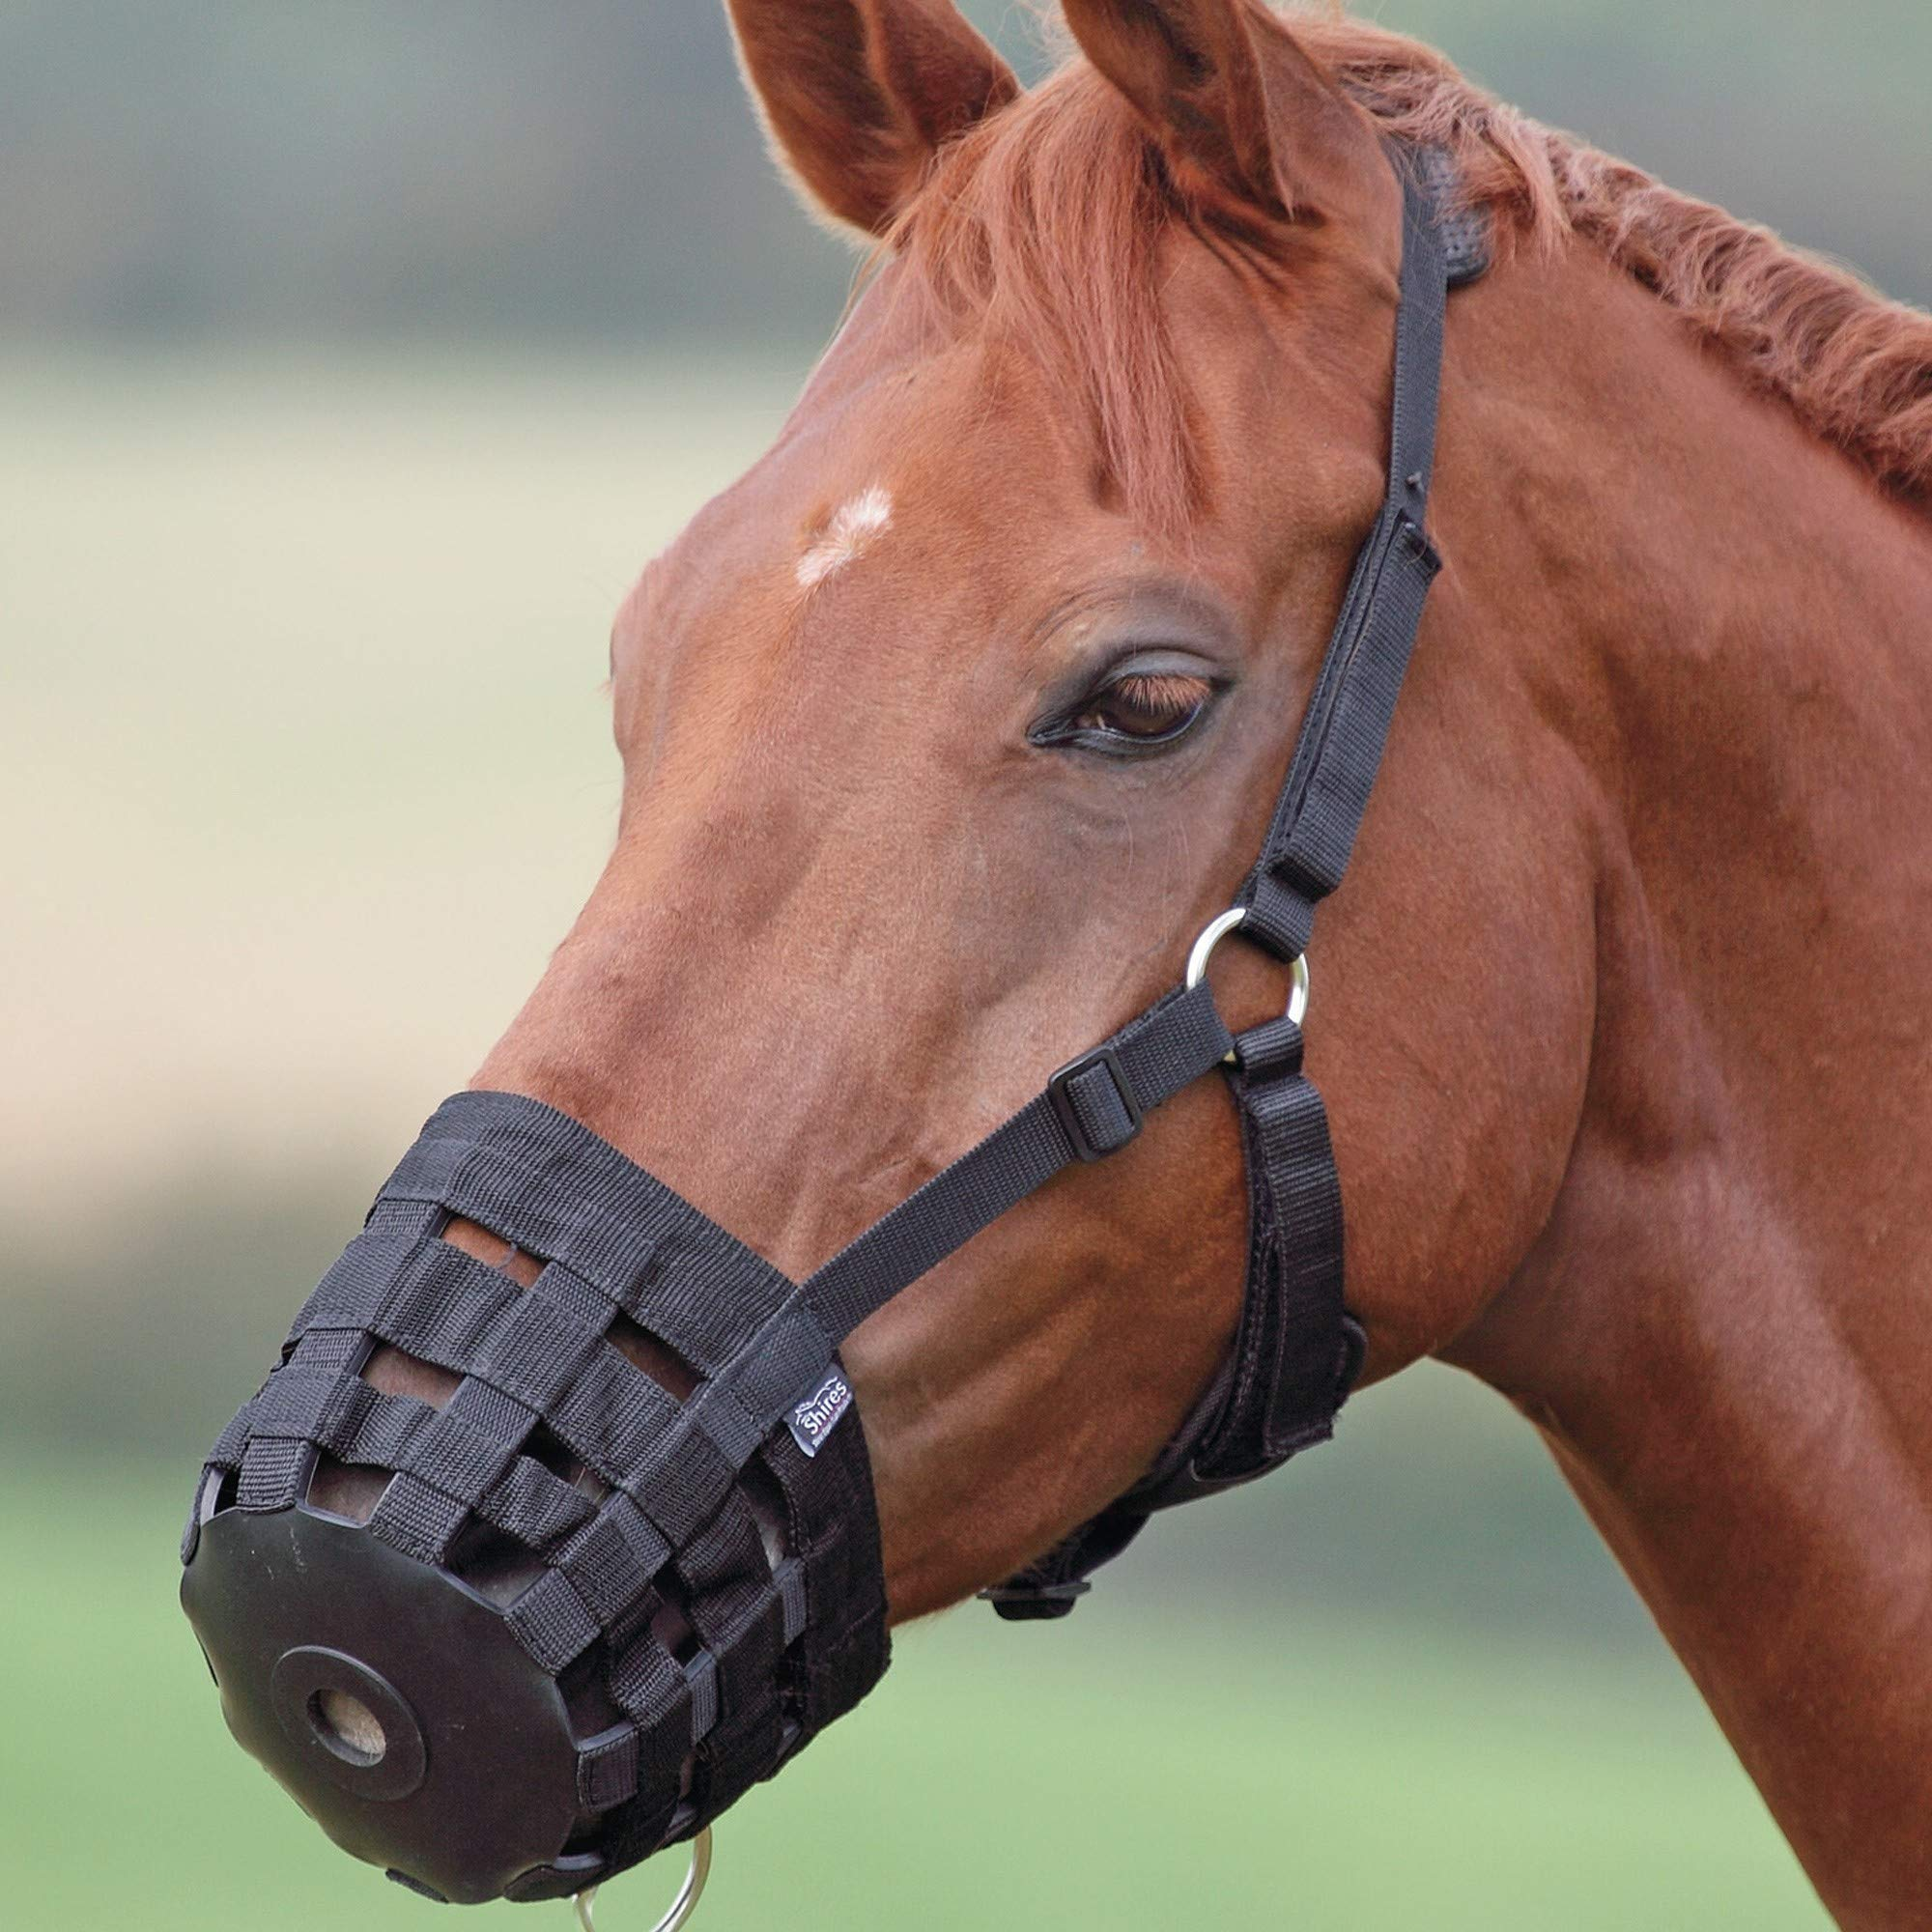 RLQ Horse Muzzle, Horse Supply Deluxe Comfort Lined Grazing Muzzle, Equestrian Equipment with Chin and Neck Pads,XS by RLQ